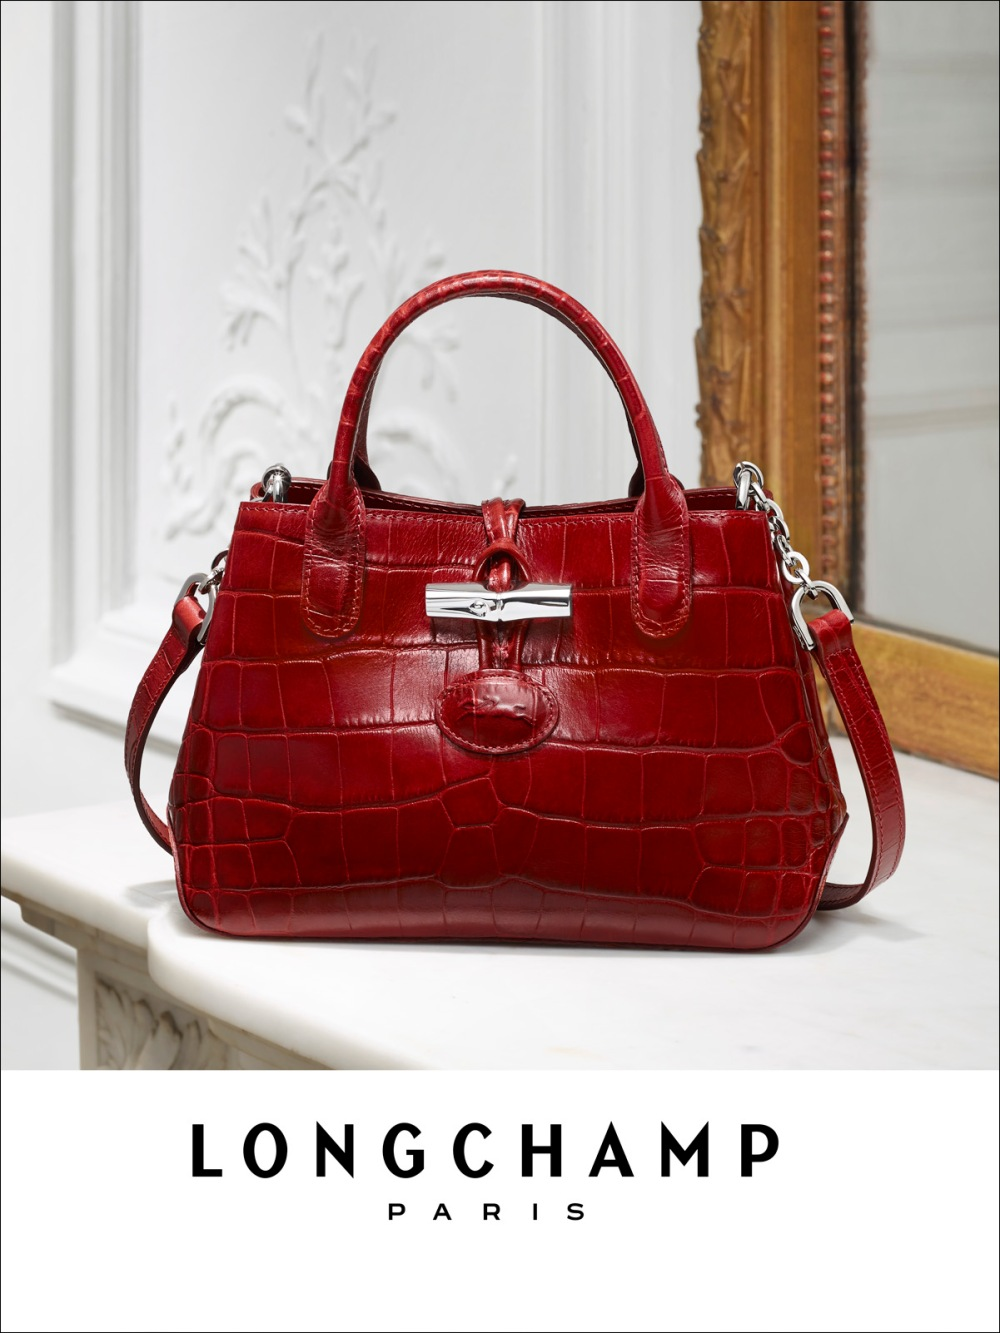 LONGCHAMP PARIS | Fall : Winter '16 ADVERTISING Photography BY ROBERTO BADIN